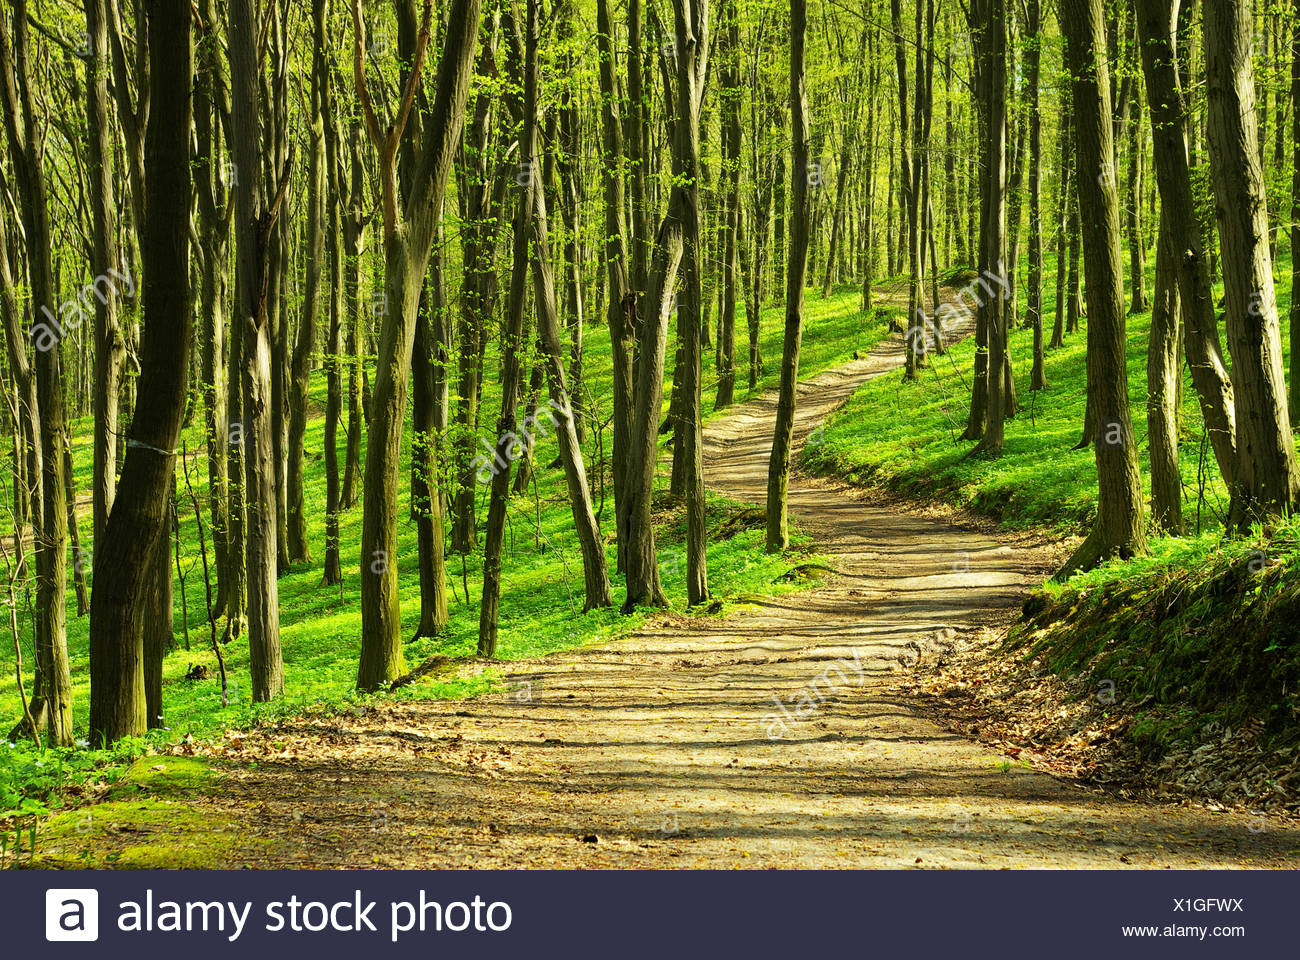 tree trees sunlight spring bouncing bounces hop skipping frisks jumping jump woods spiritual plants divine wilderness path way - Stock Image